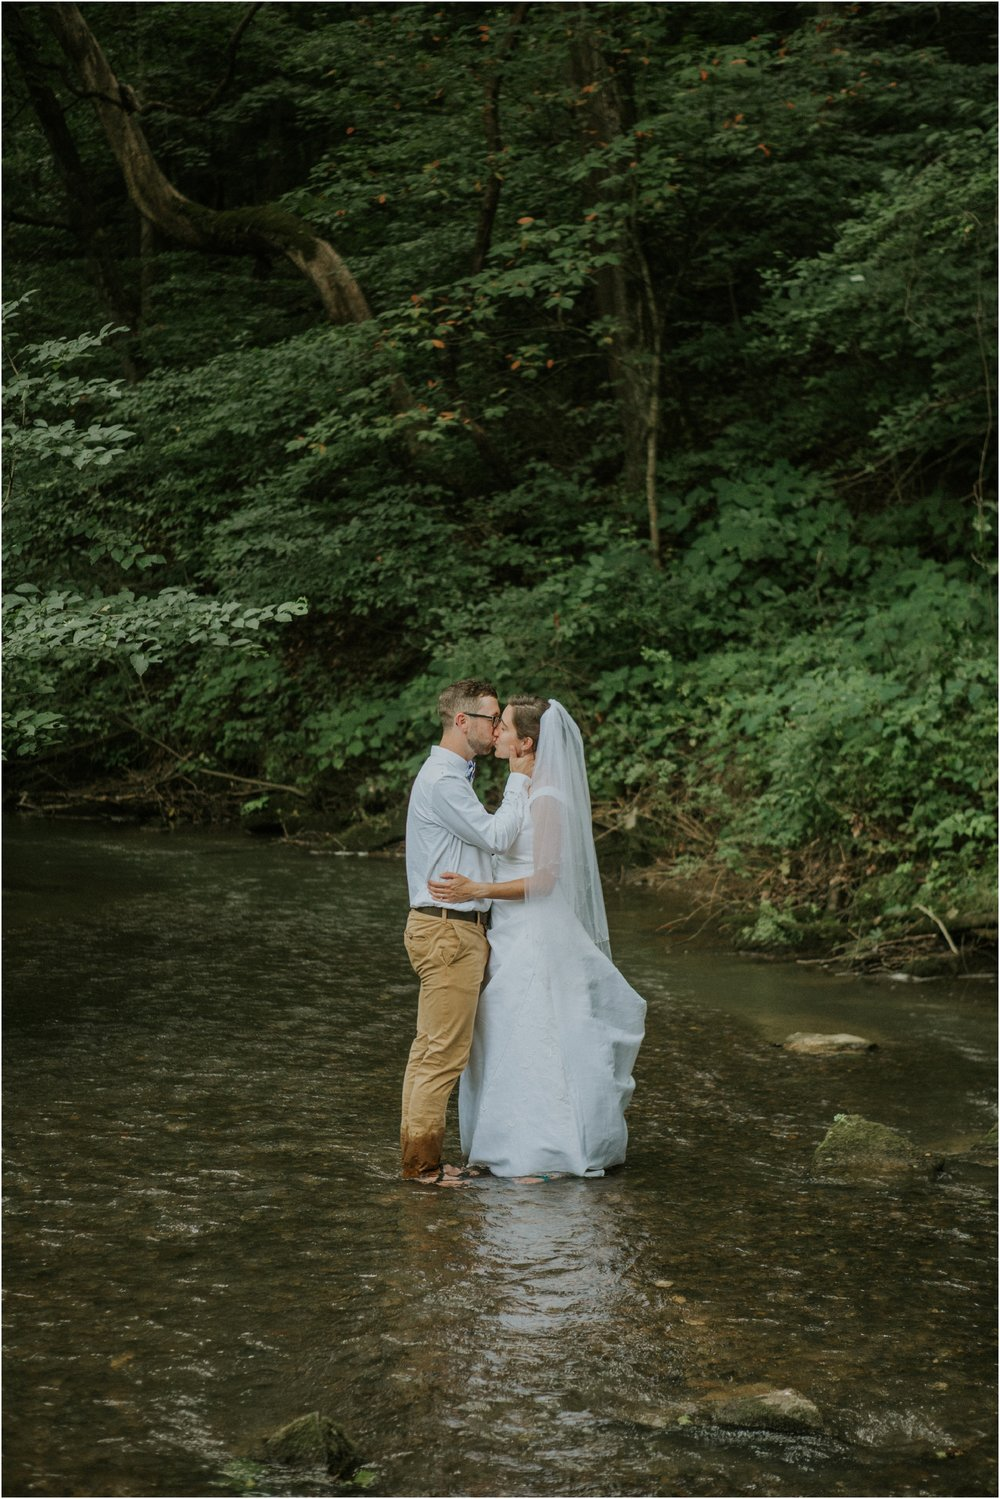 sugar-hollow-park-bristol-virginia-wedding-intimate-woodsy-black-forest-ceremony-adventurous-couple_0082.jpg